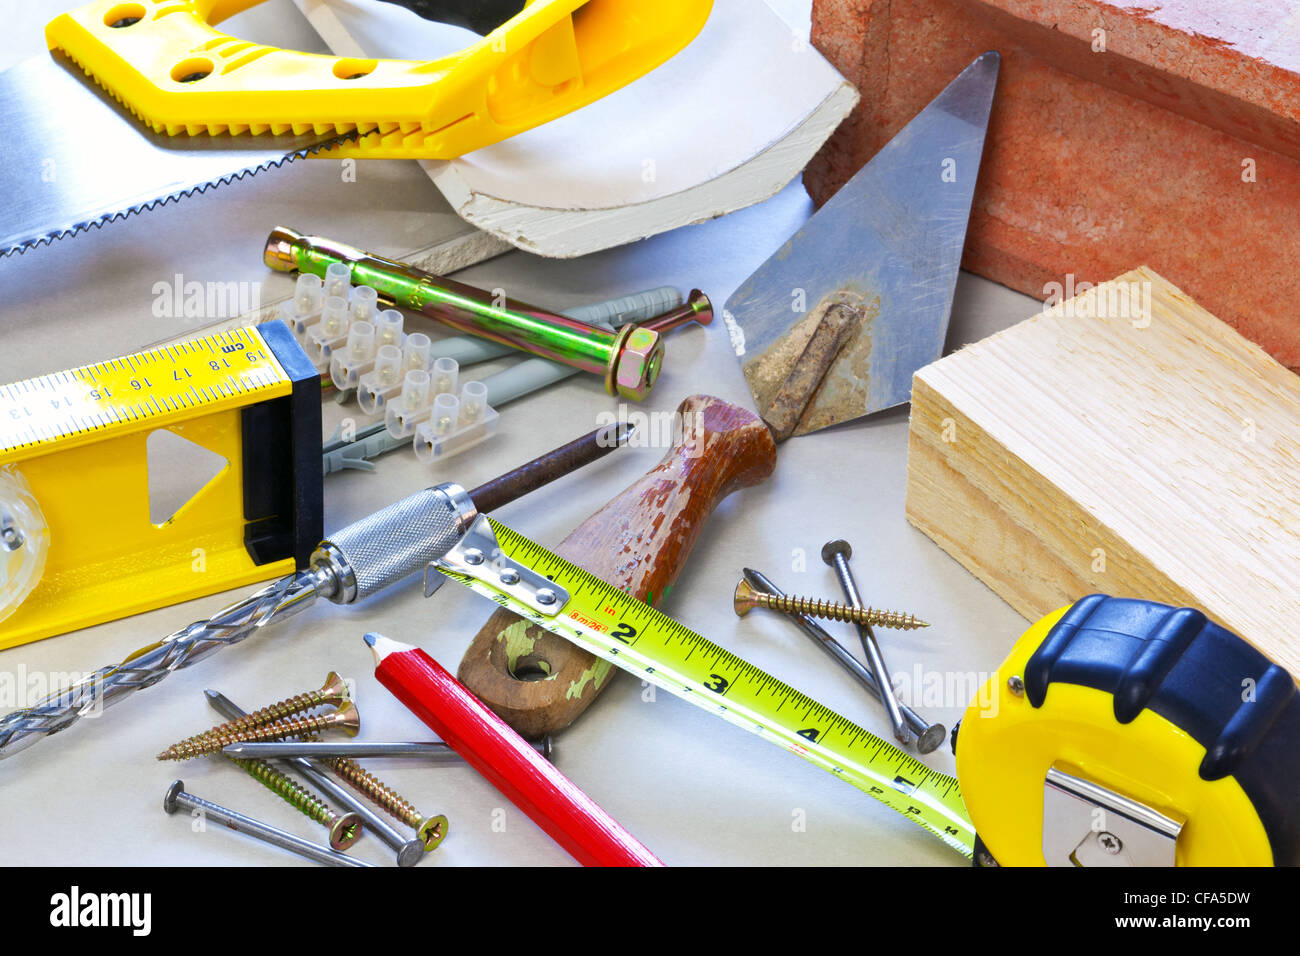 Still life photo of building tools and materials - Stock Image